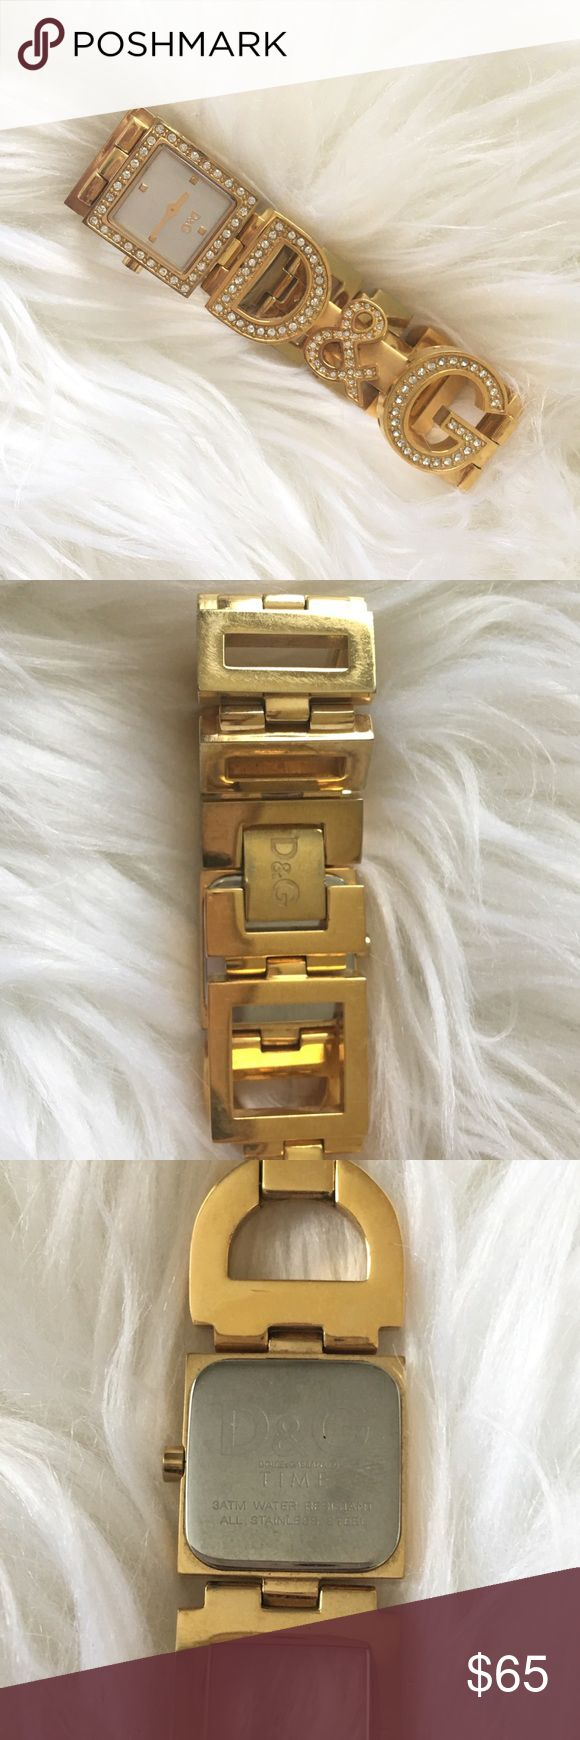 ⛔️WEEKEND FLASH SALE⛔️Dolce and Gabbana Watch ⛔️WEEKEND FLASH SALE⛔️Gold Dolce and Gabbana watch with rhinestone embellishments. Slight imperfections on underside of band from normal wear and tear. Battery needed. Originally $350. Asking $45 firm. Asking price will return to $65 by midnight, EST 3/26. Dolce & Gabbana Accessories Watches